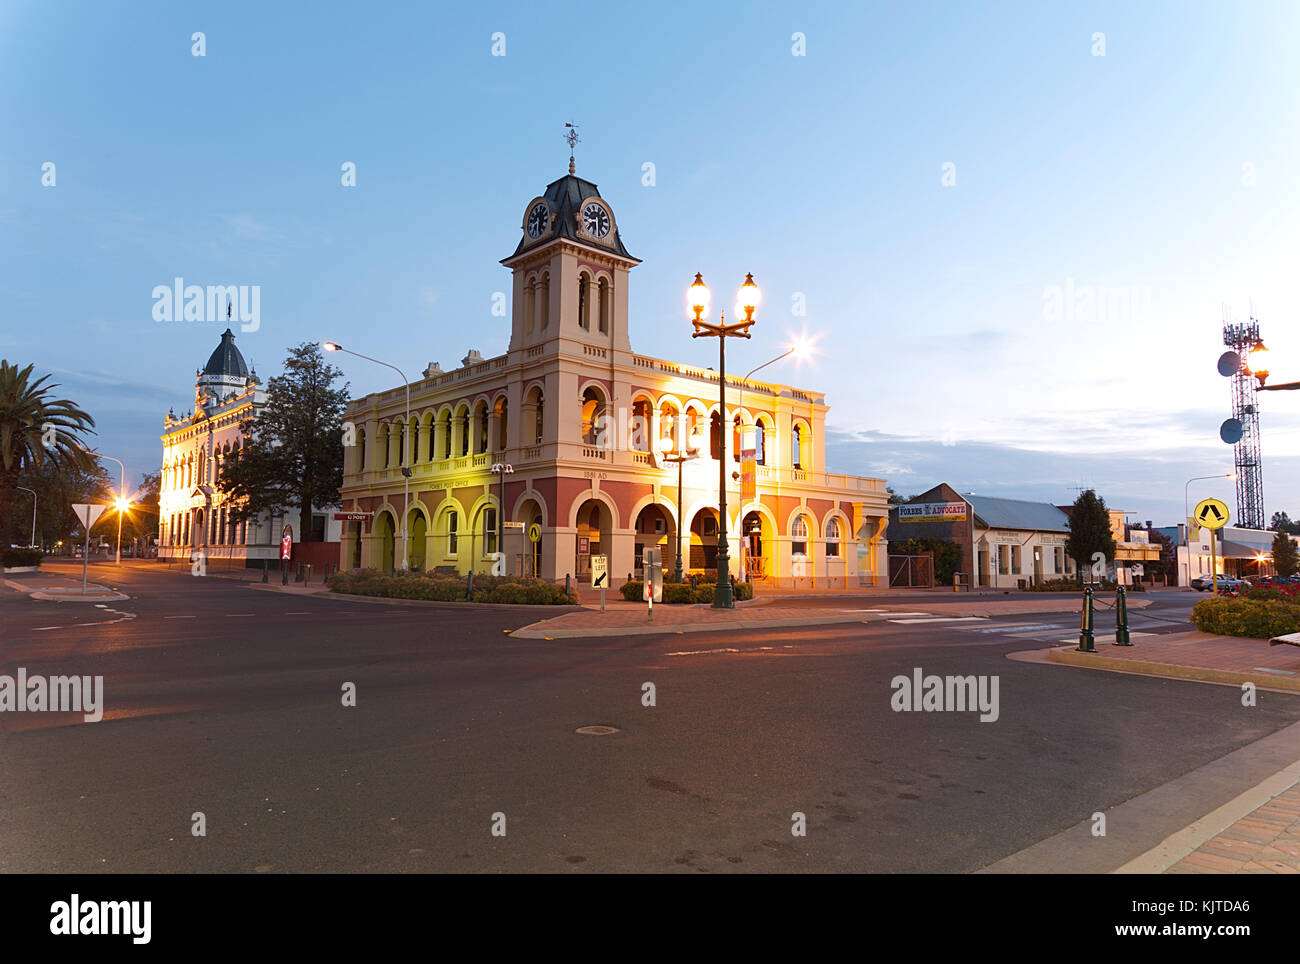 The Post Office completed in 1881 and designed by the NSW Colonial Architect's Office under James Barnet. Forbes - Stock Image